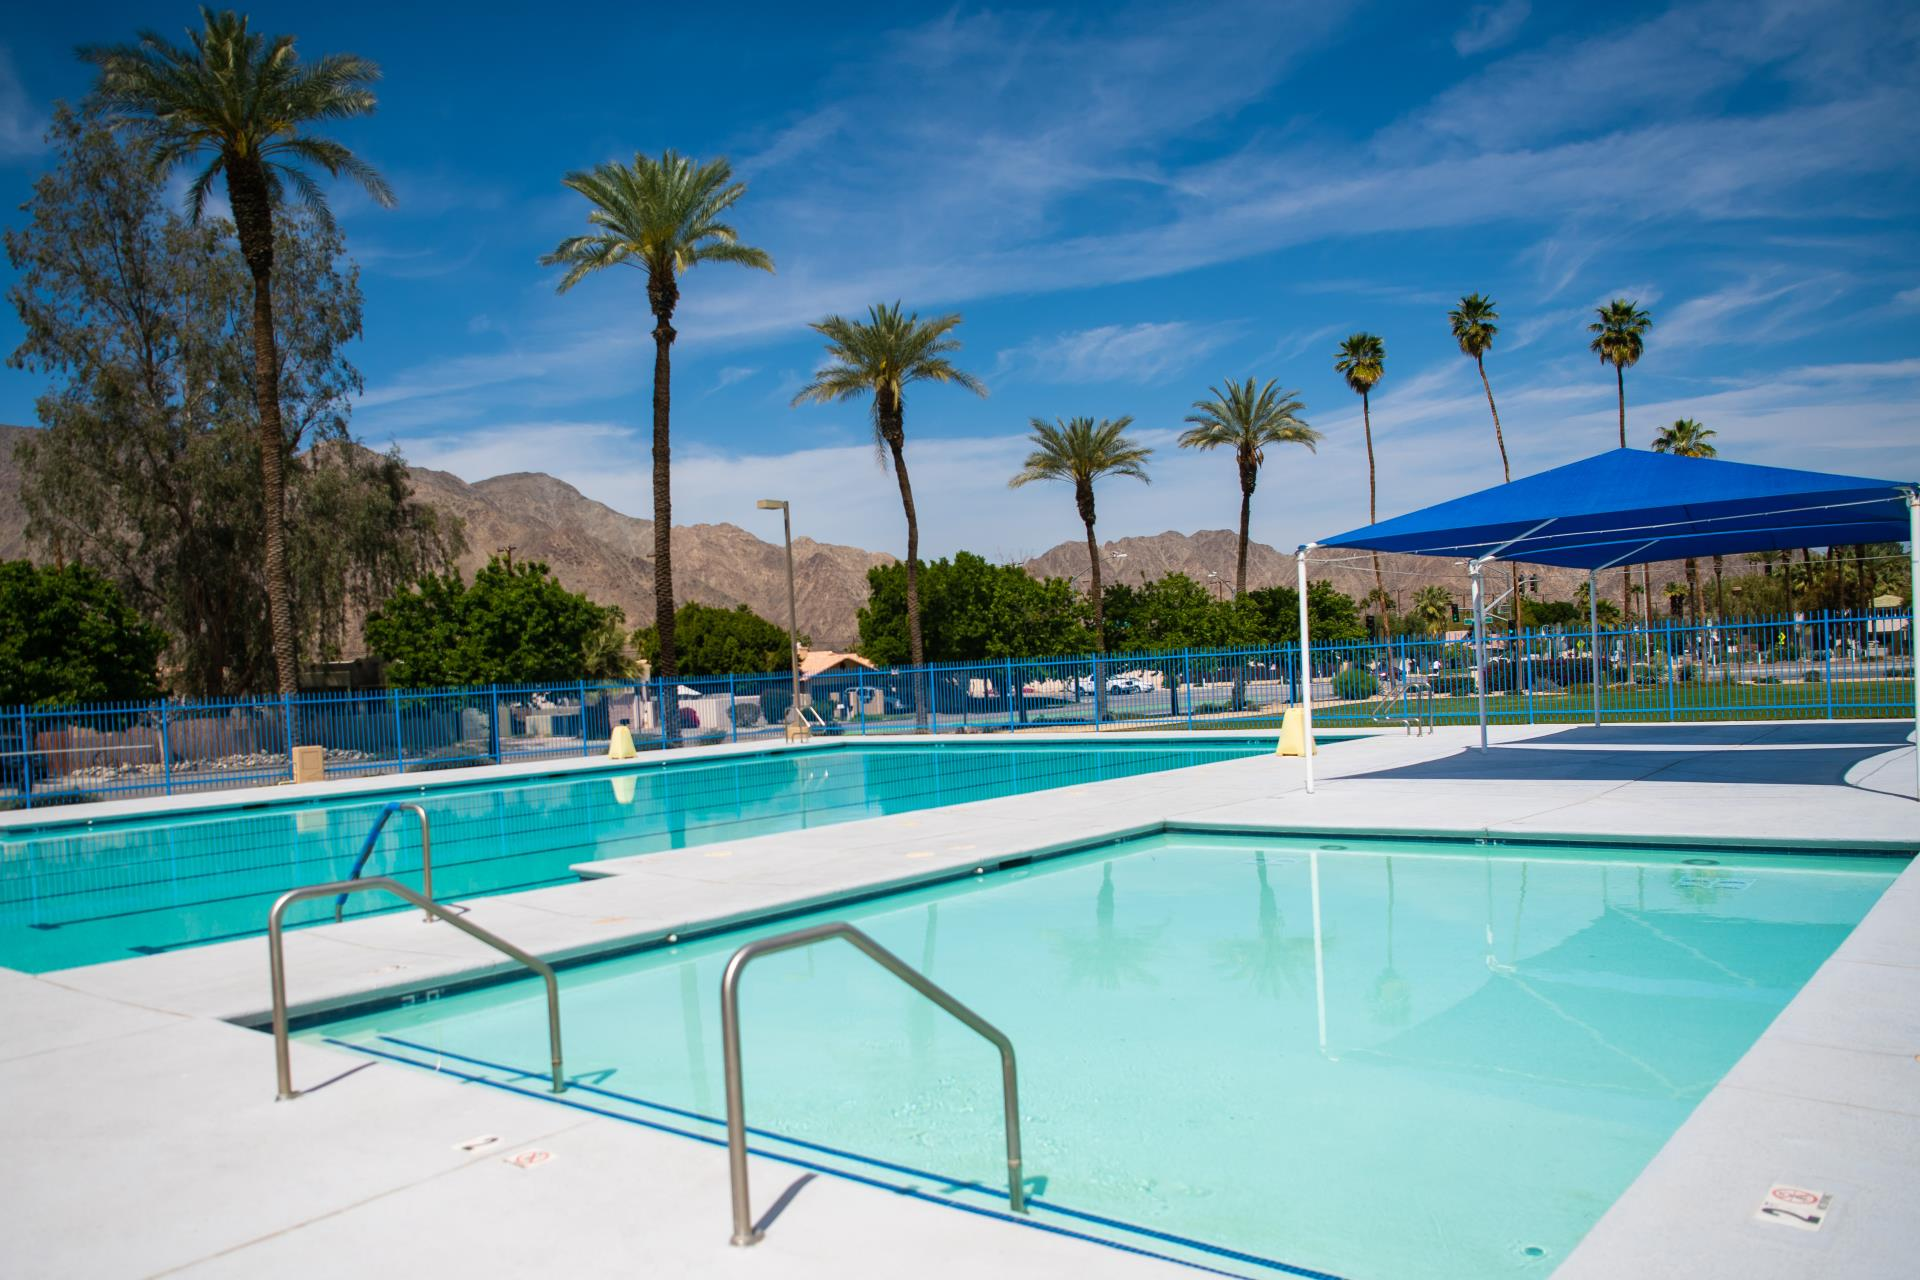 Fritz Burns Pool La Quinta Ca